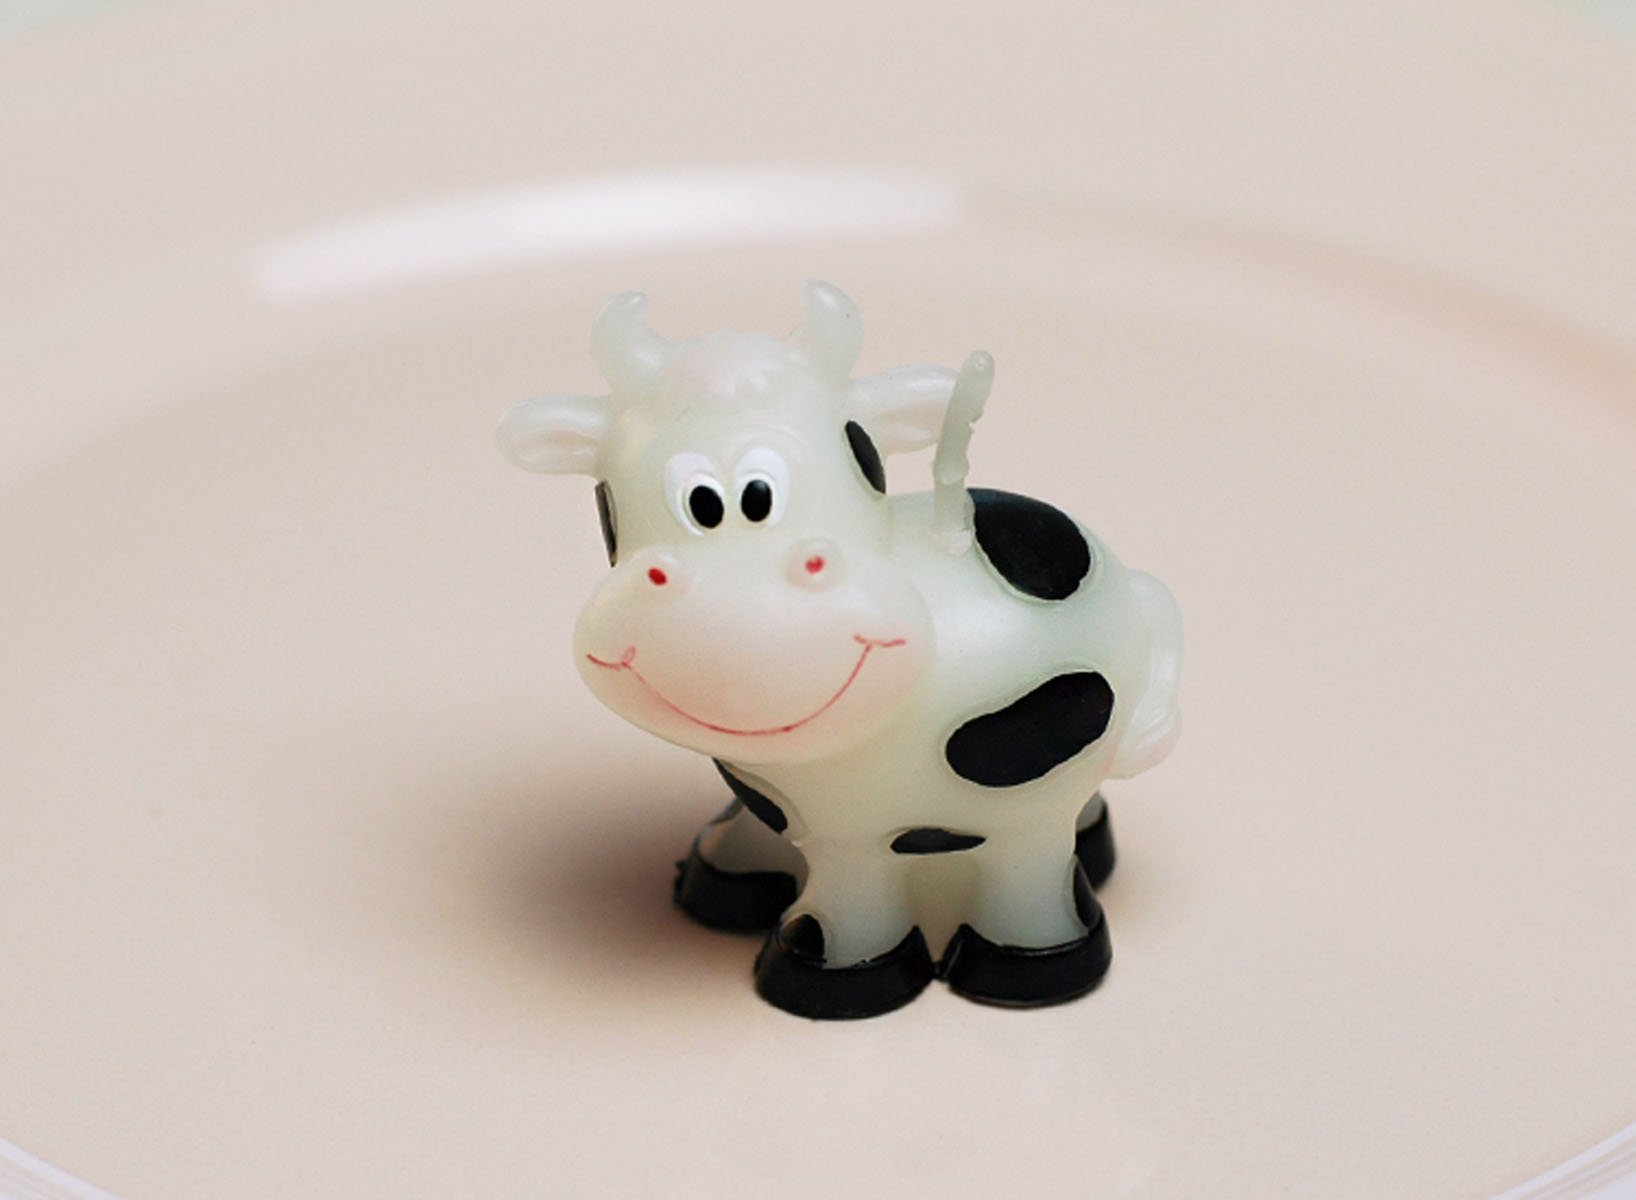 Cartoon Zodiac Taurus Cattle Charming Gifts Party Candles Smokeless Candles Birthday Candles for Baby Shower and Wedding Favor Keepsake Favor (10)